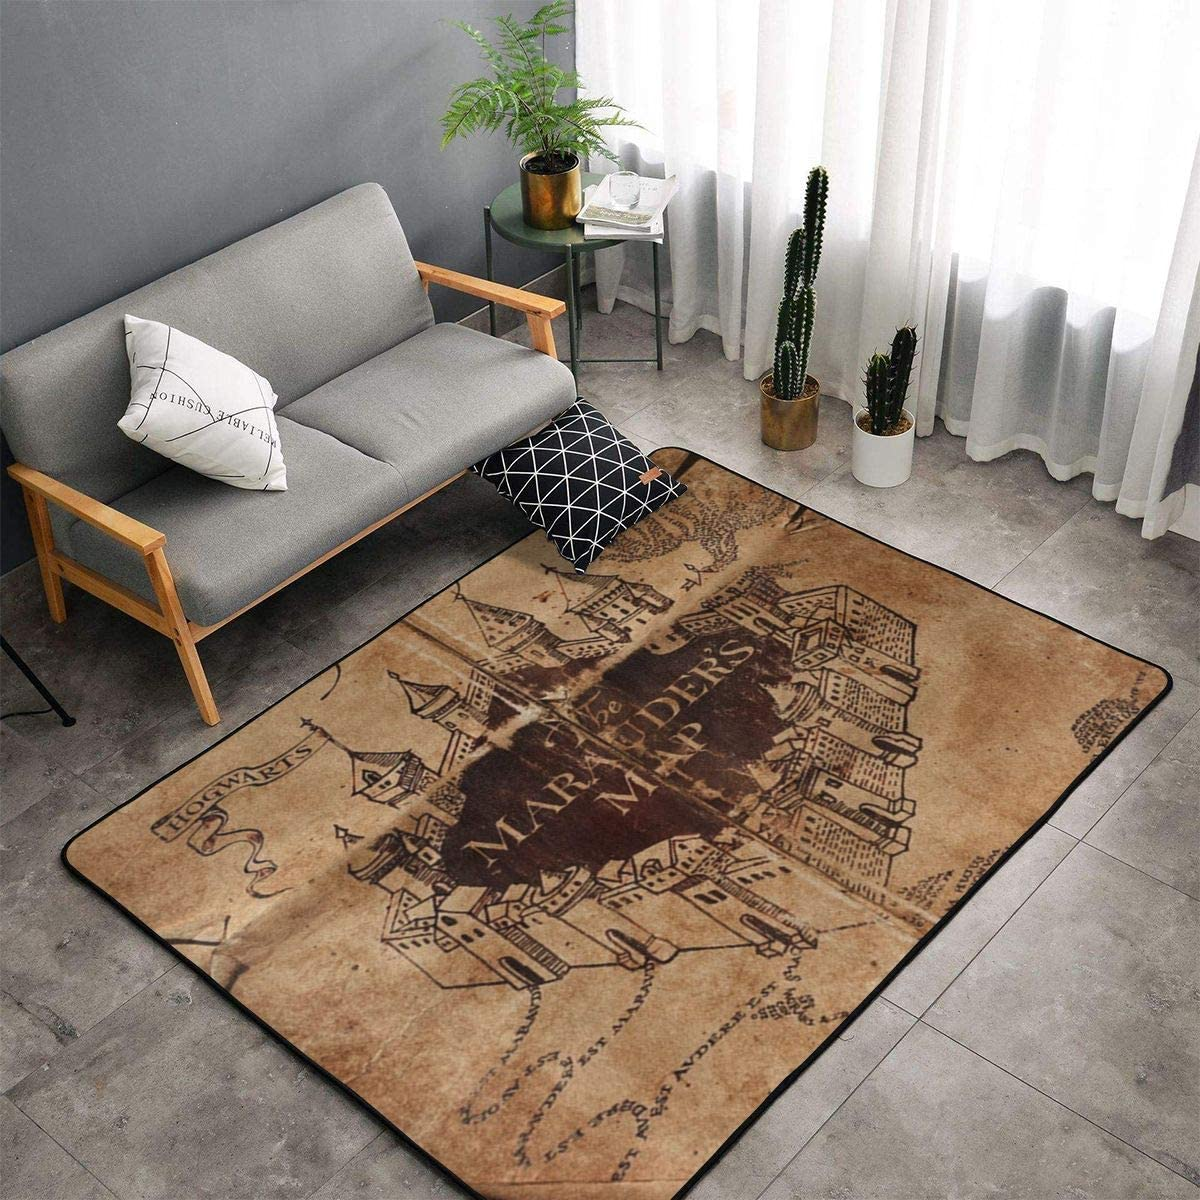 I Like Exercise Marauders Map Kitchen Rug, Bedroom Living Room Kitchen Rug, Doormat Floor Mat Nursery Rugs, Kids Children Play Mat Bath Mat, Throw Rugs Runner Exercise Mat